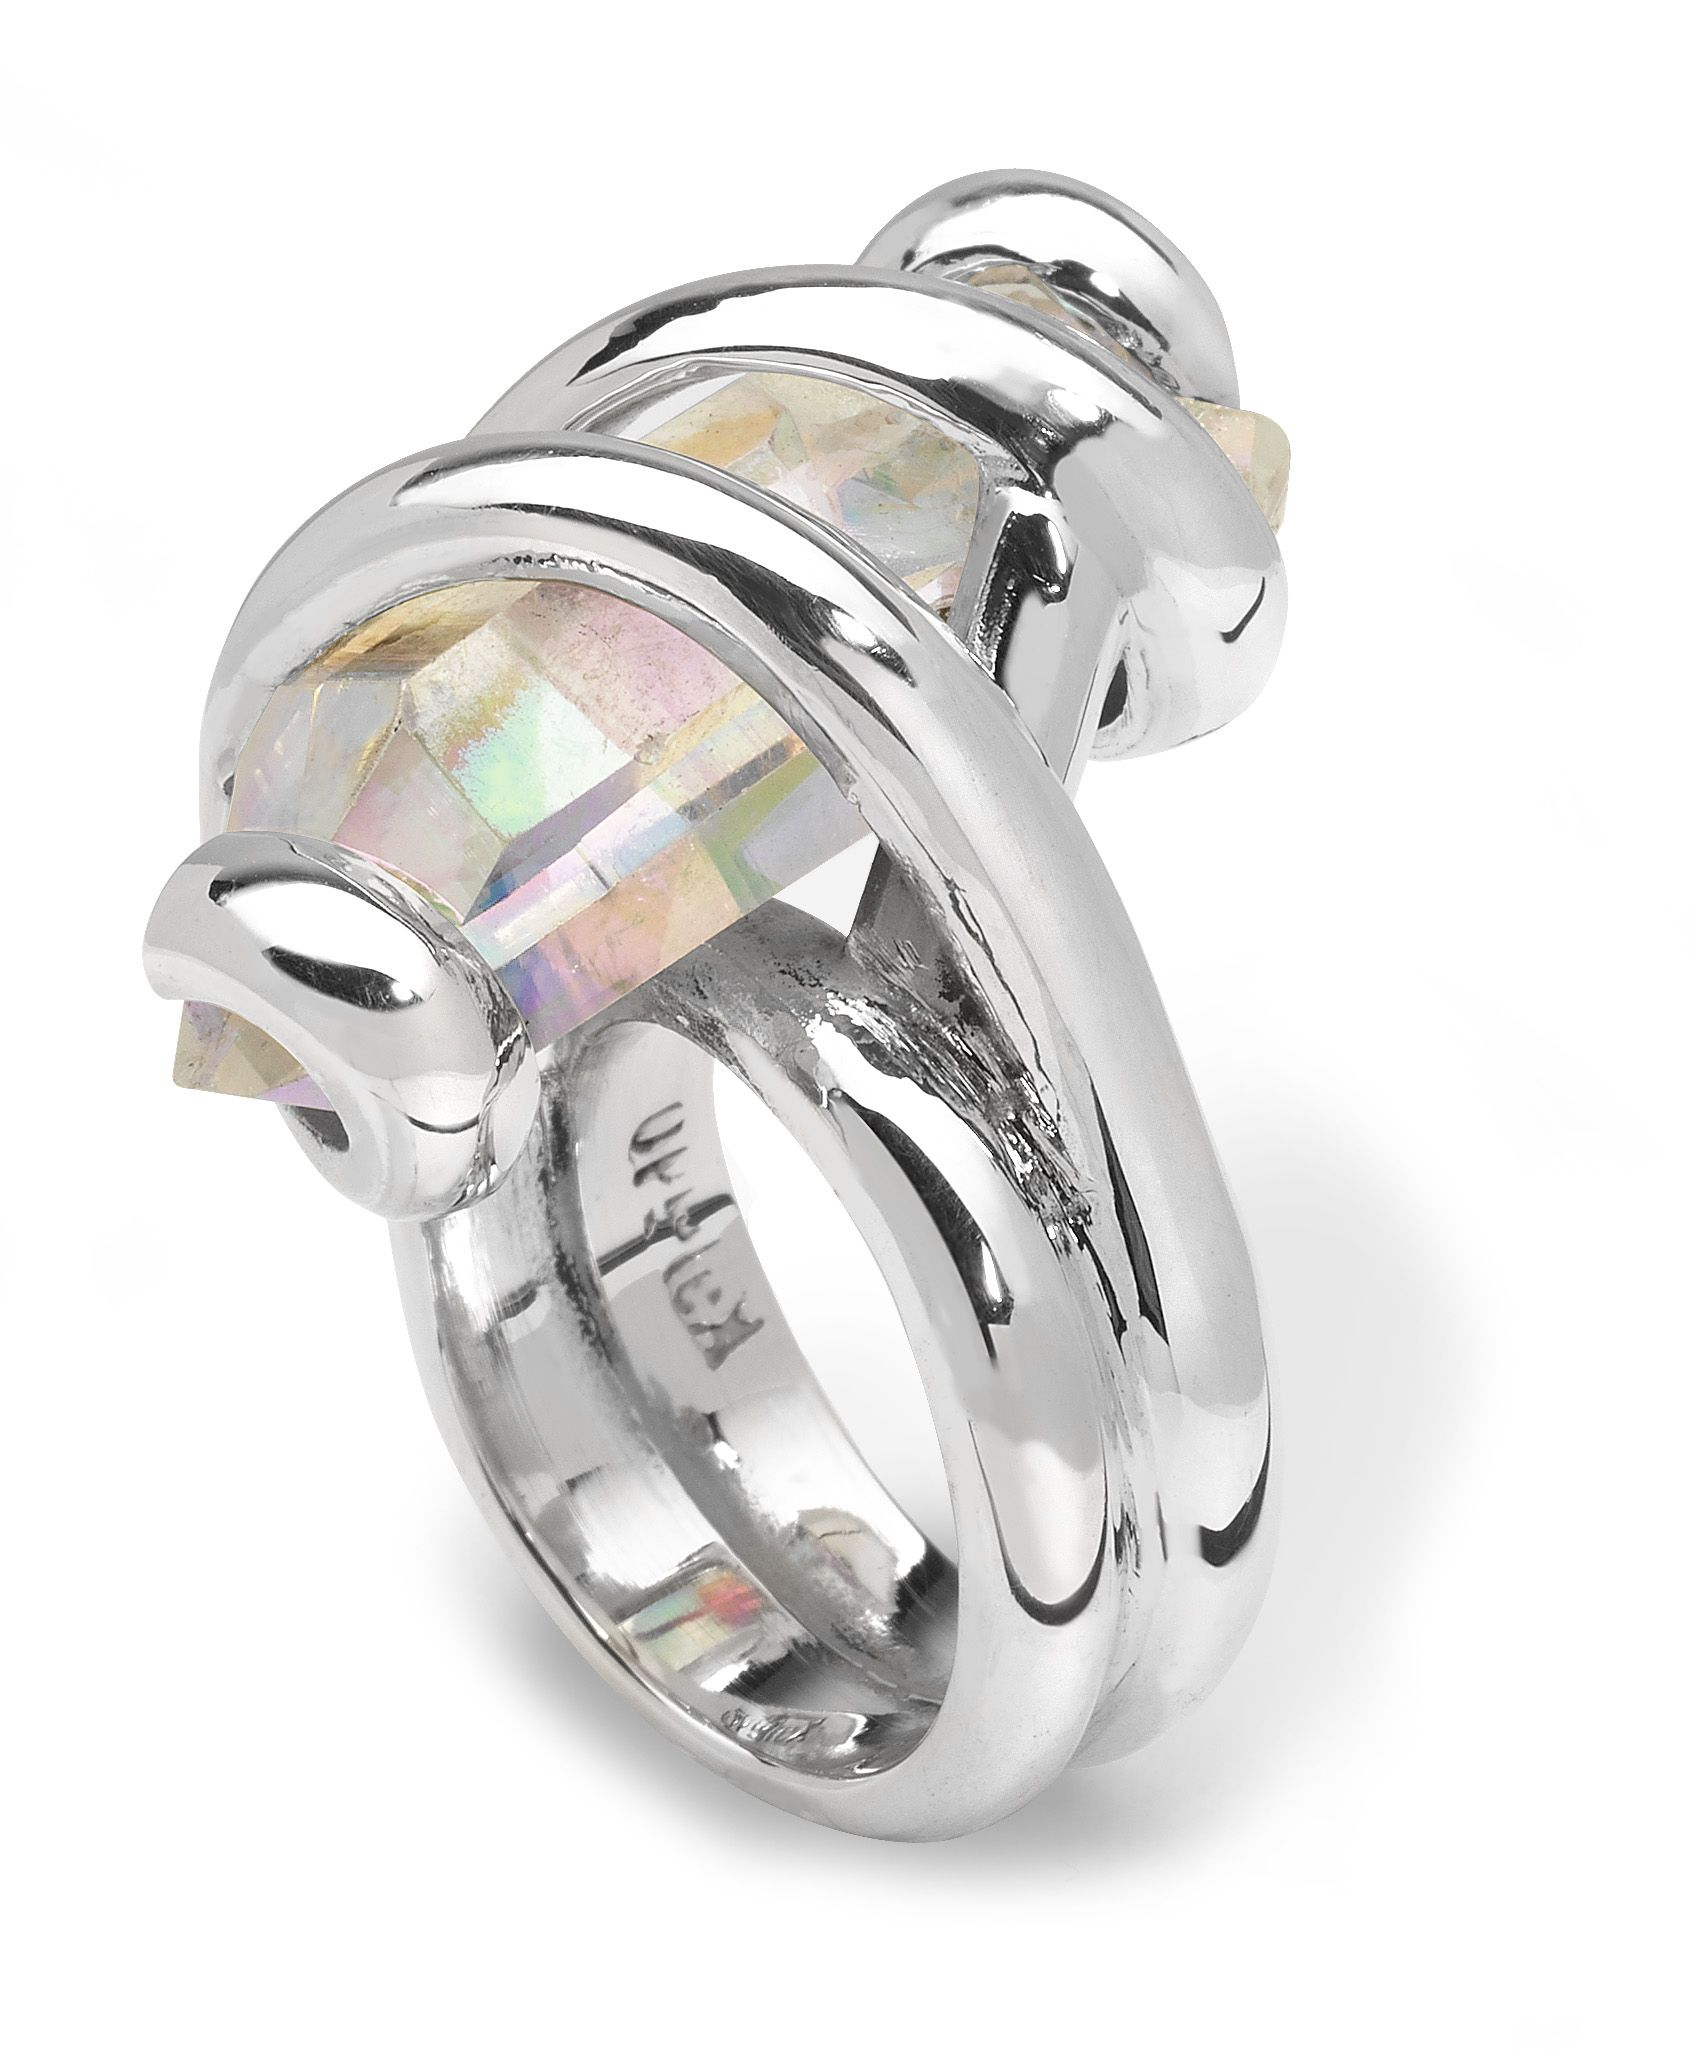 A beautiful 'Opal' crystal rock ring from Kaleido, so sad i lost my one :-(